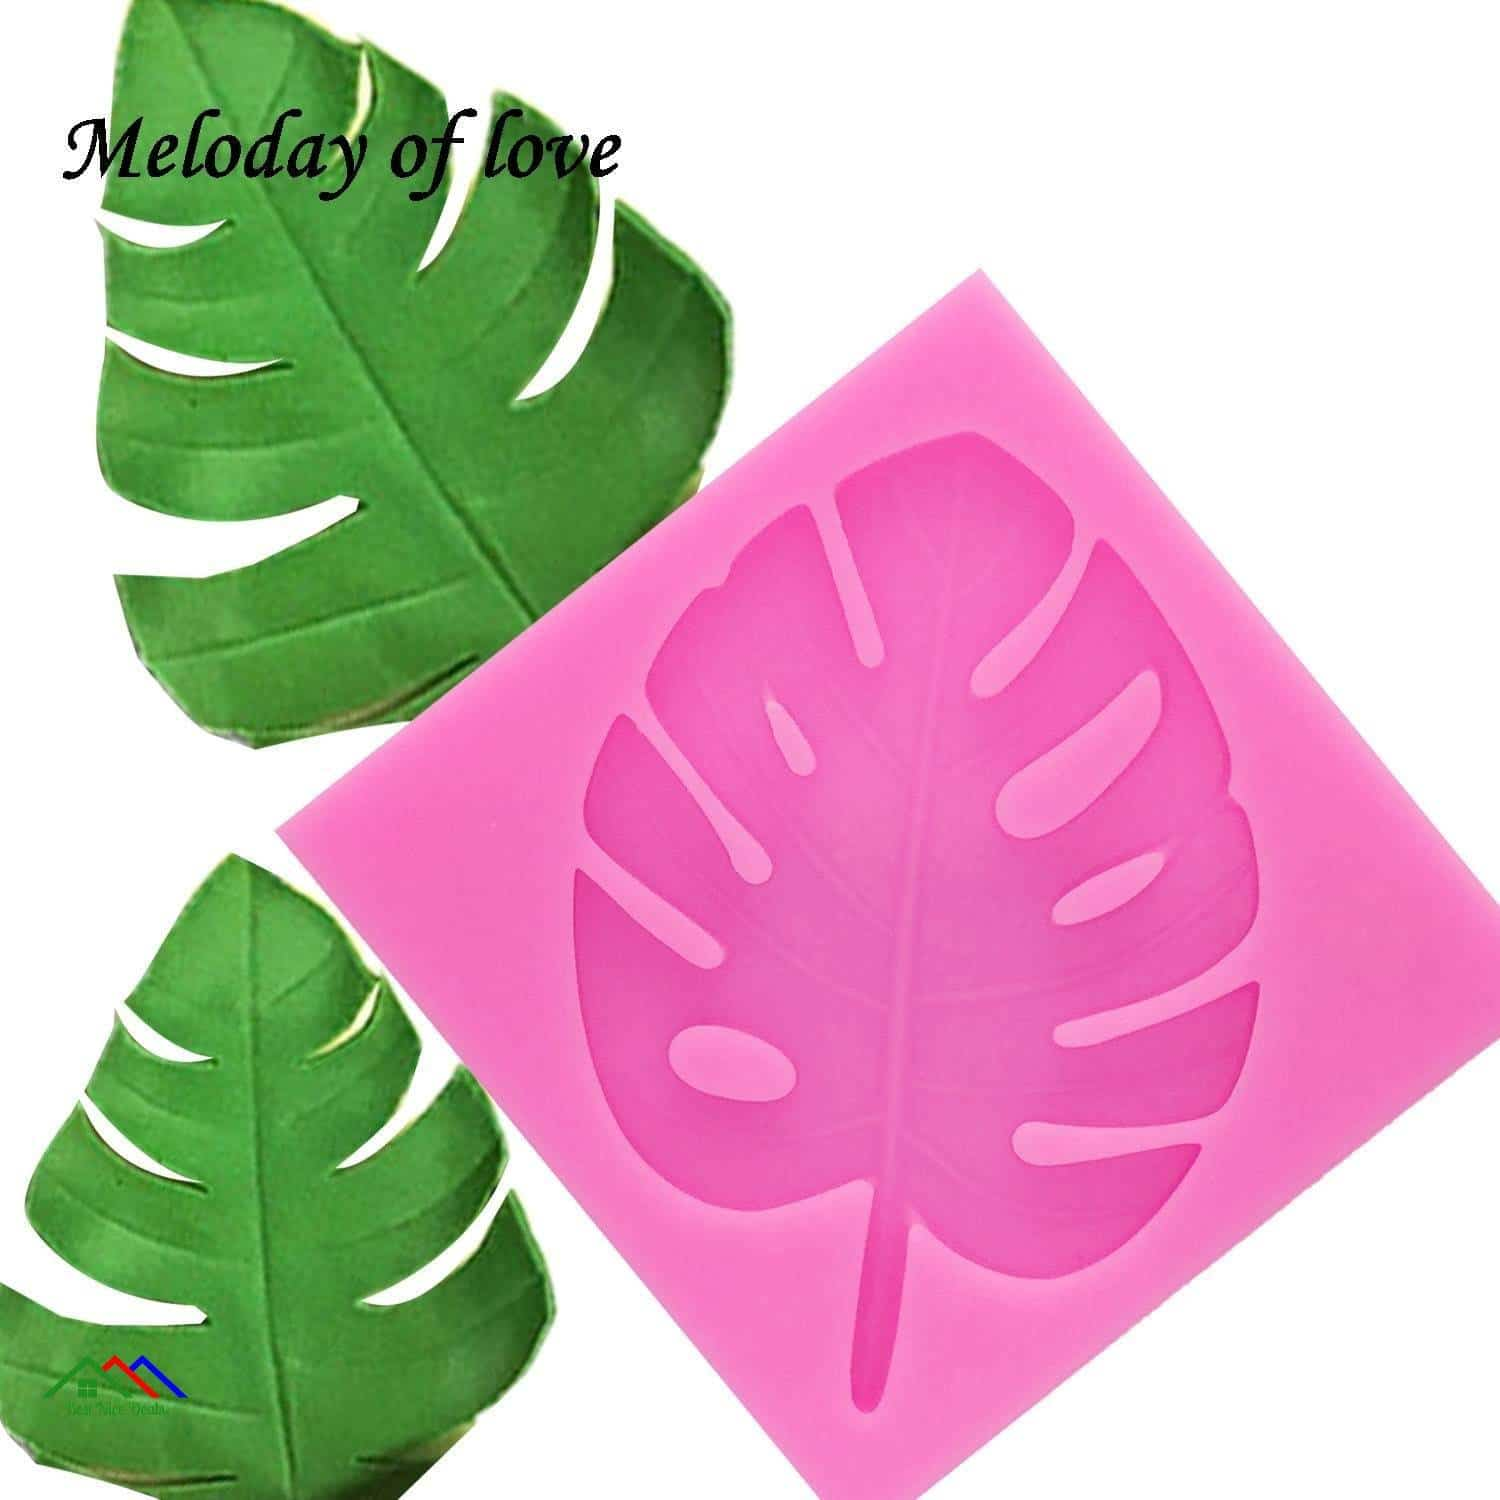 3D Tree Leaf Silicone Mold Top Selling Products New Arrivals Kitchen Silicone Molds